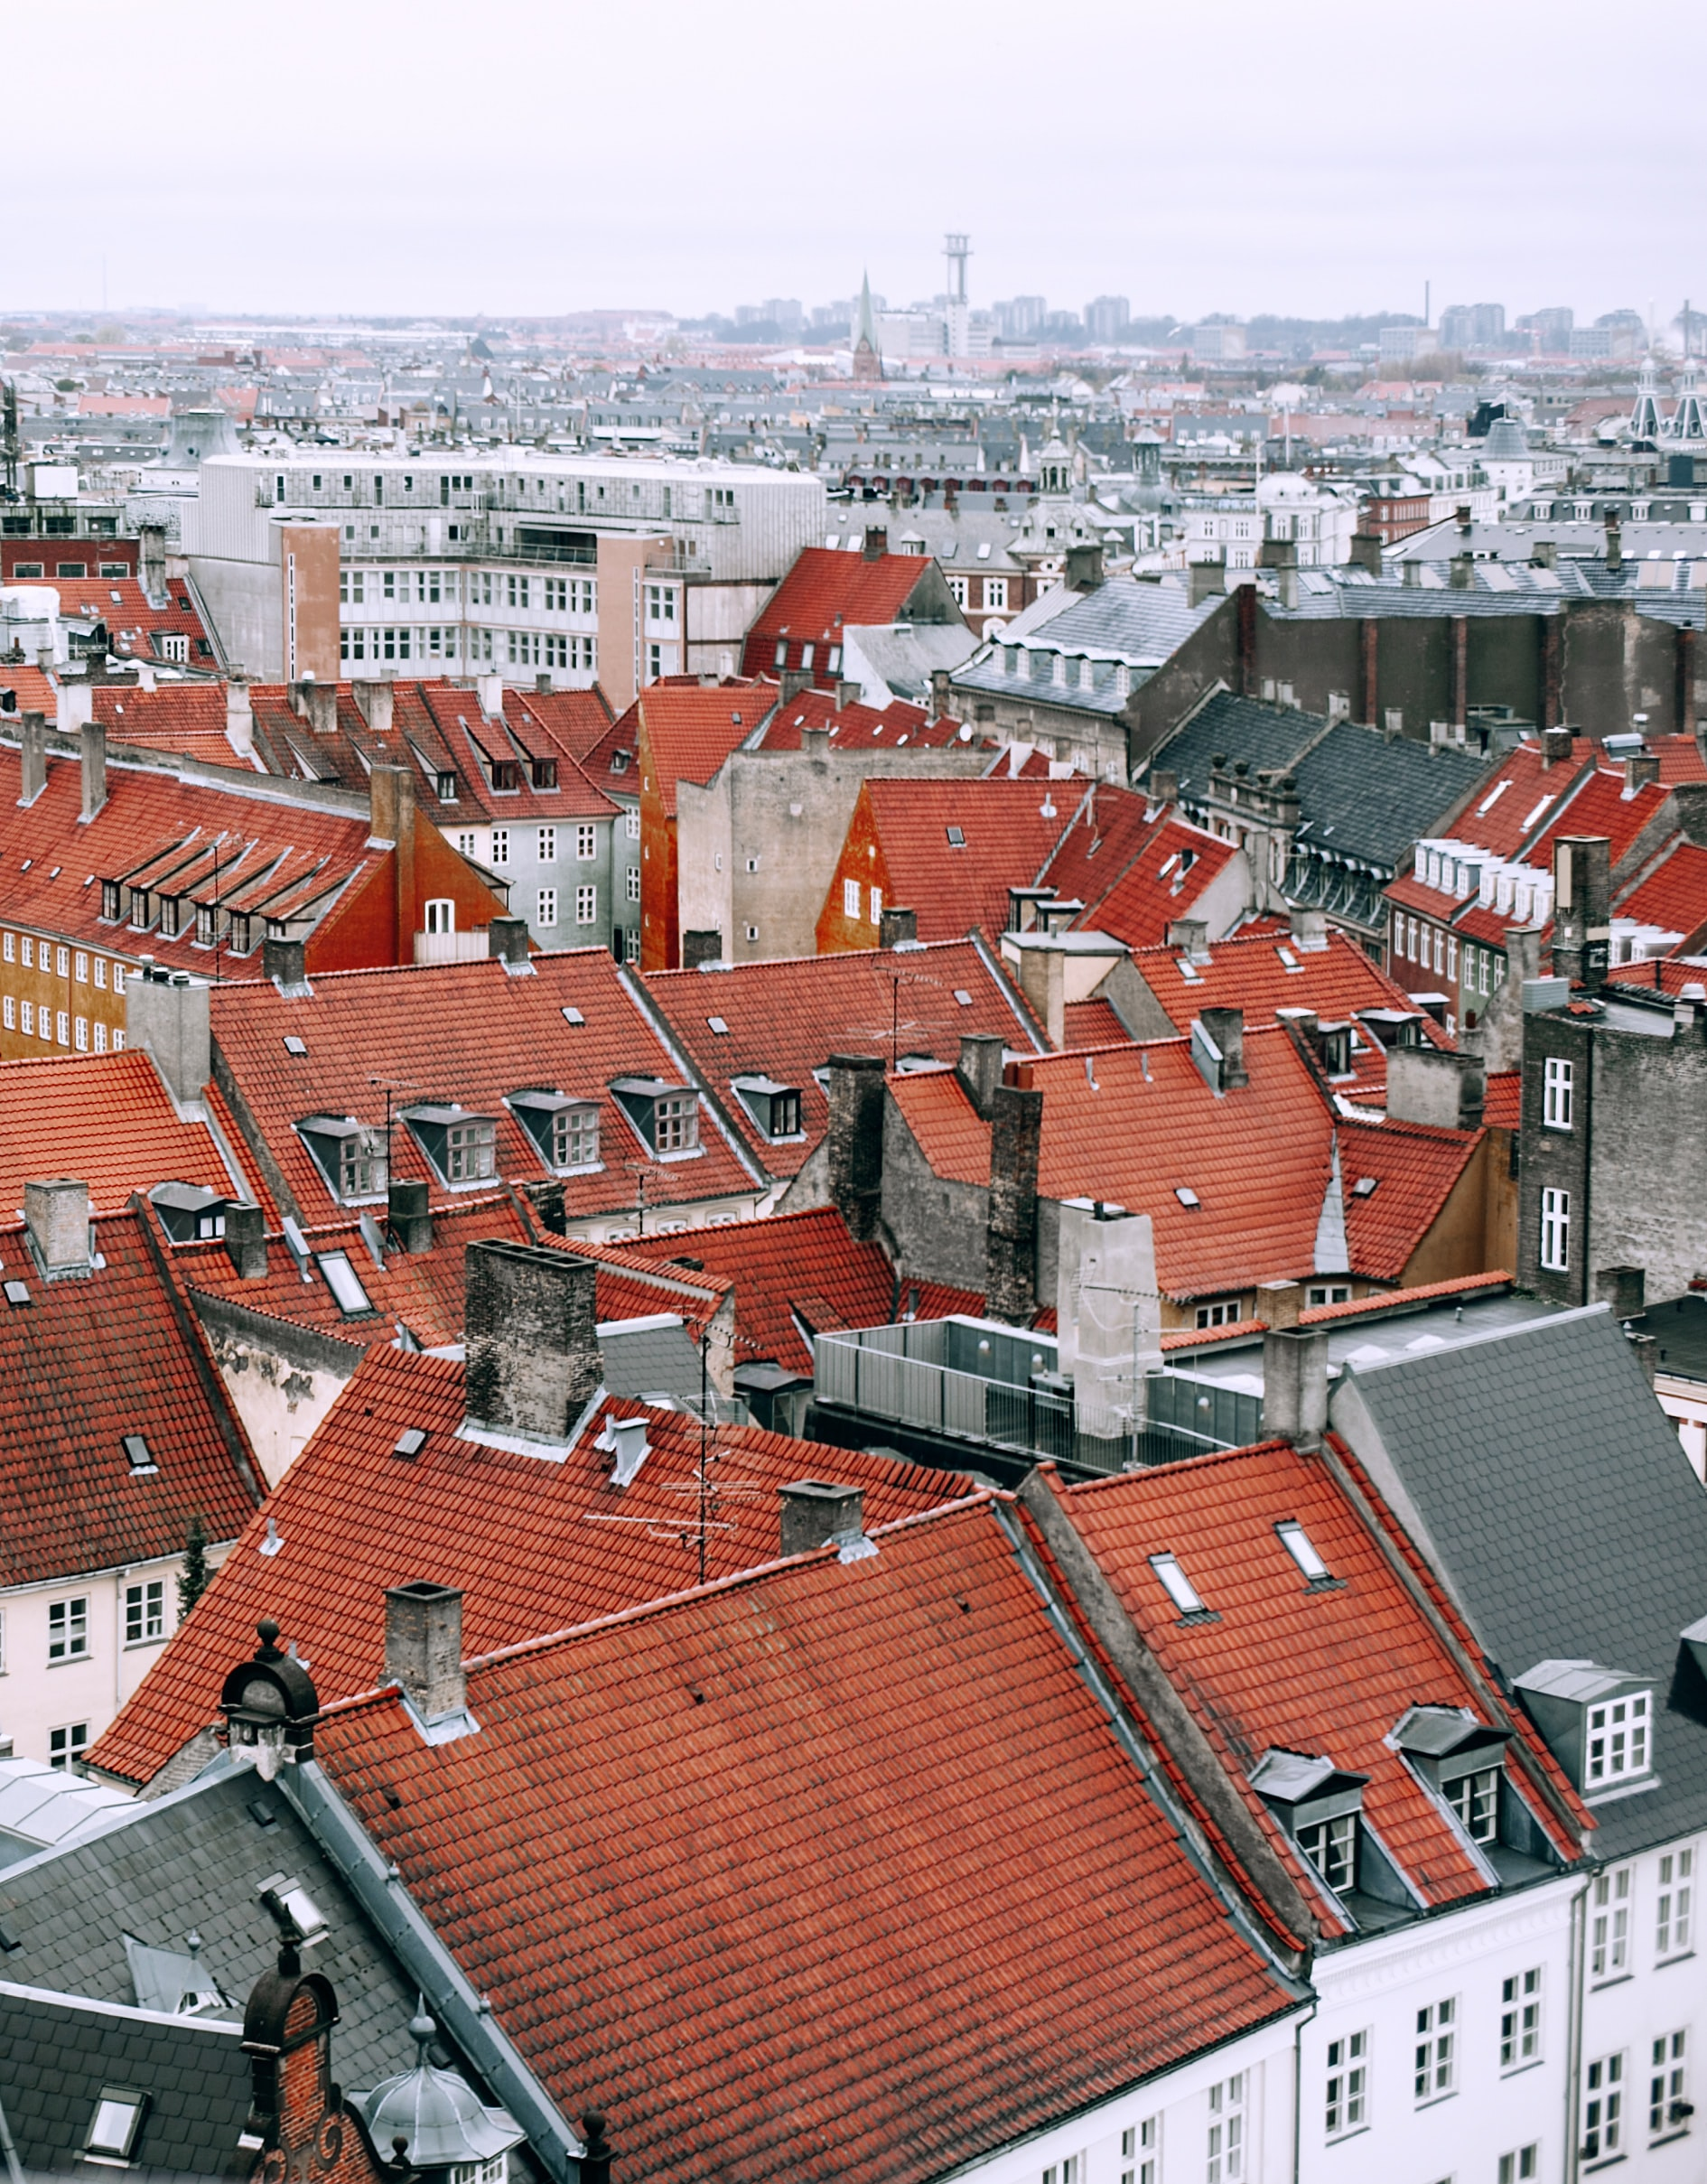 brown and grey roof houses at daytime